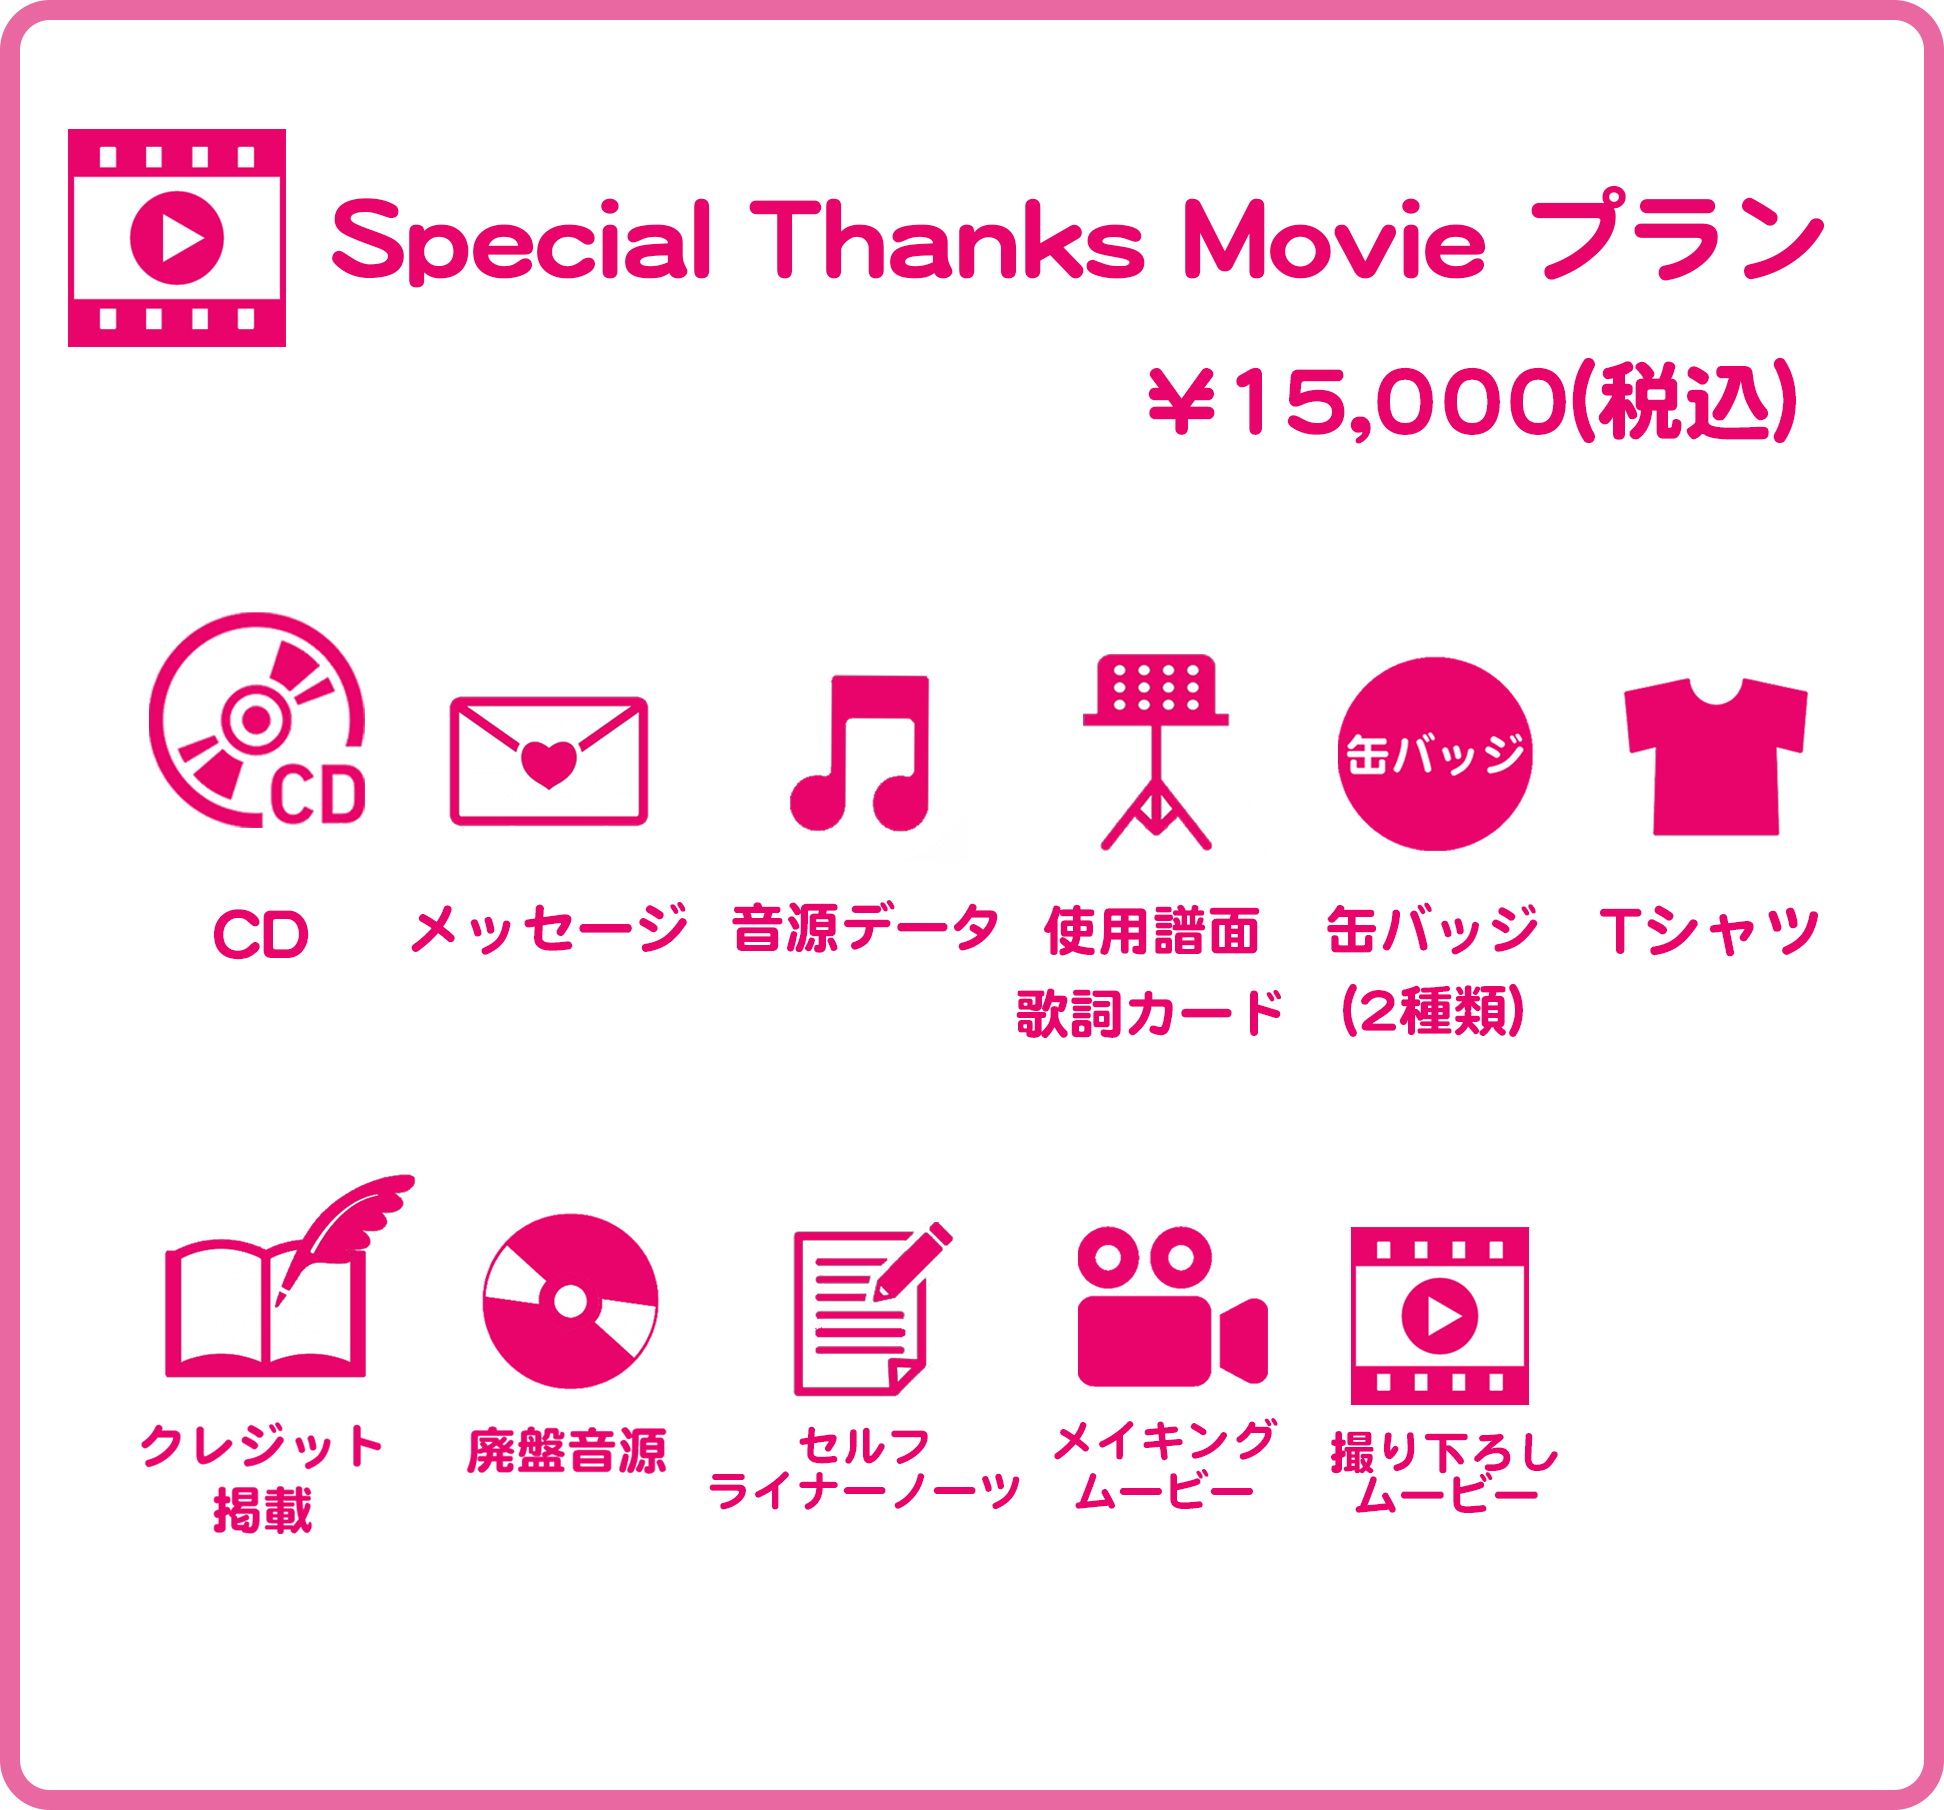 <Special Thanks Movieプラン>